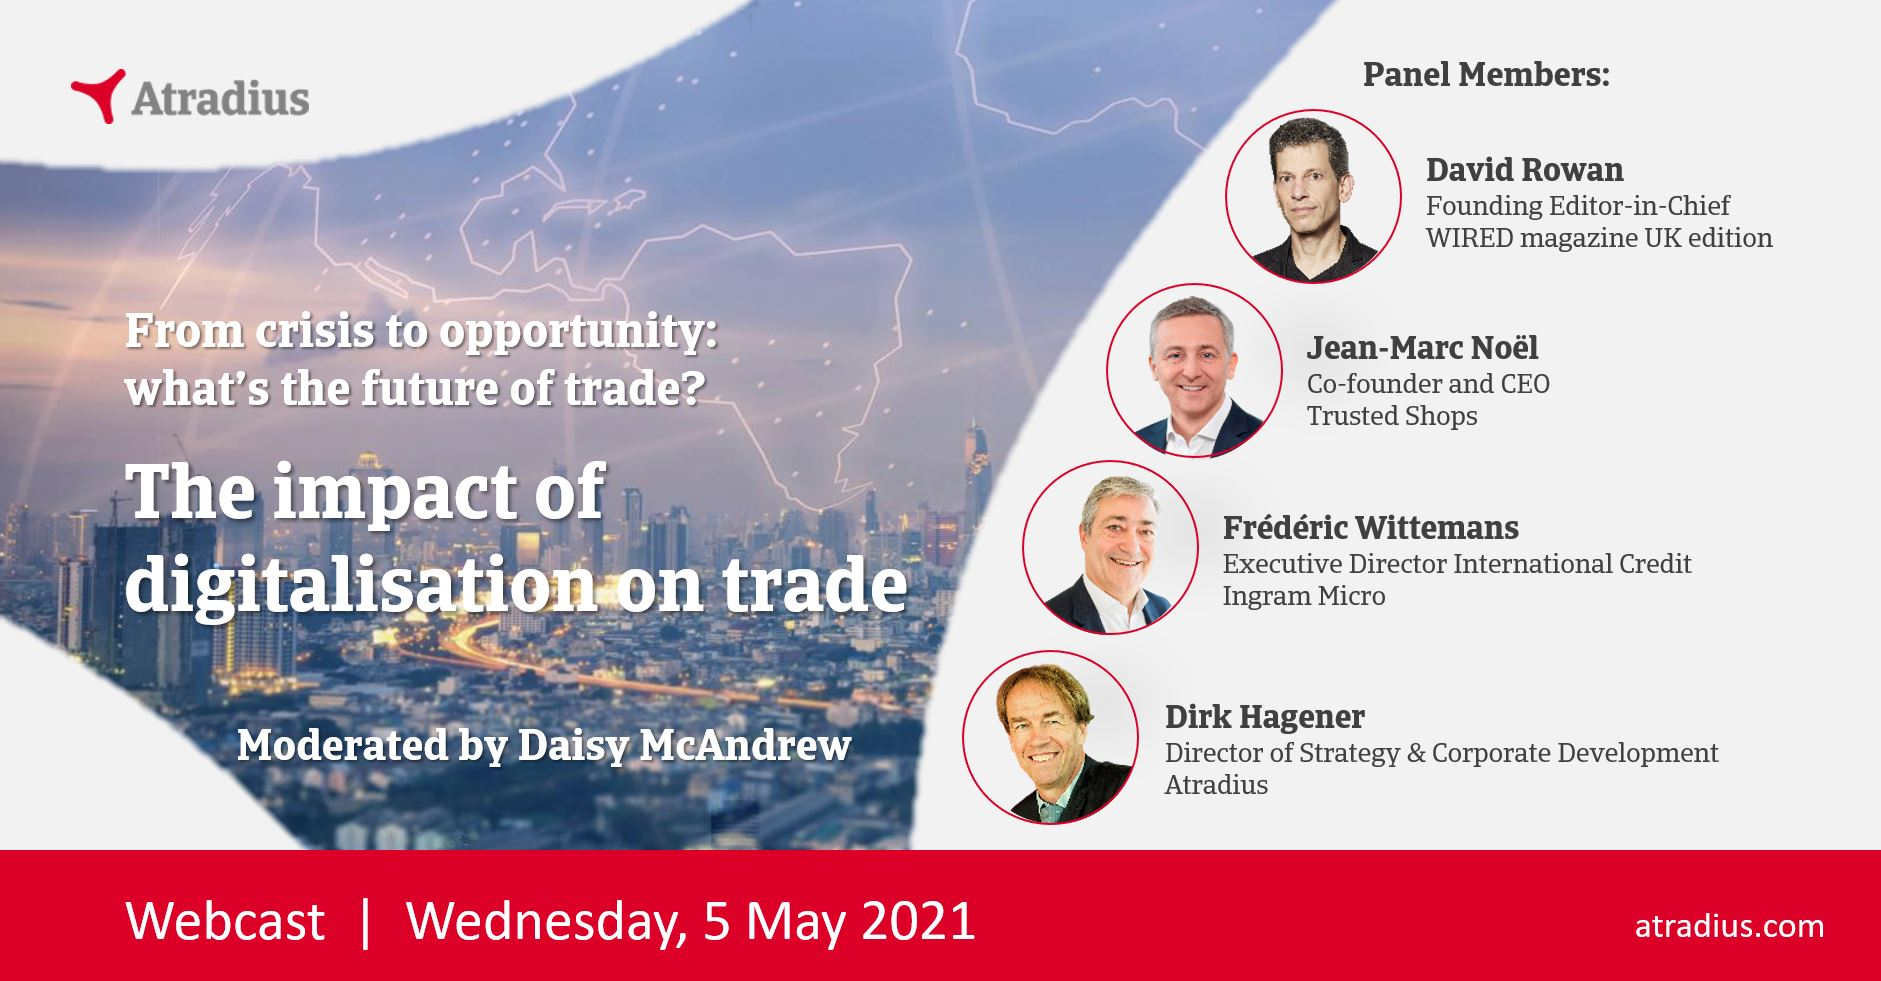 Webinar Atradius Event 3: The impact of digitalisation on trade